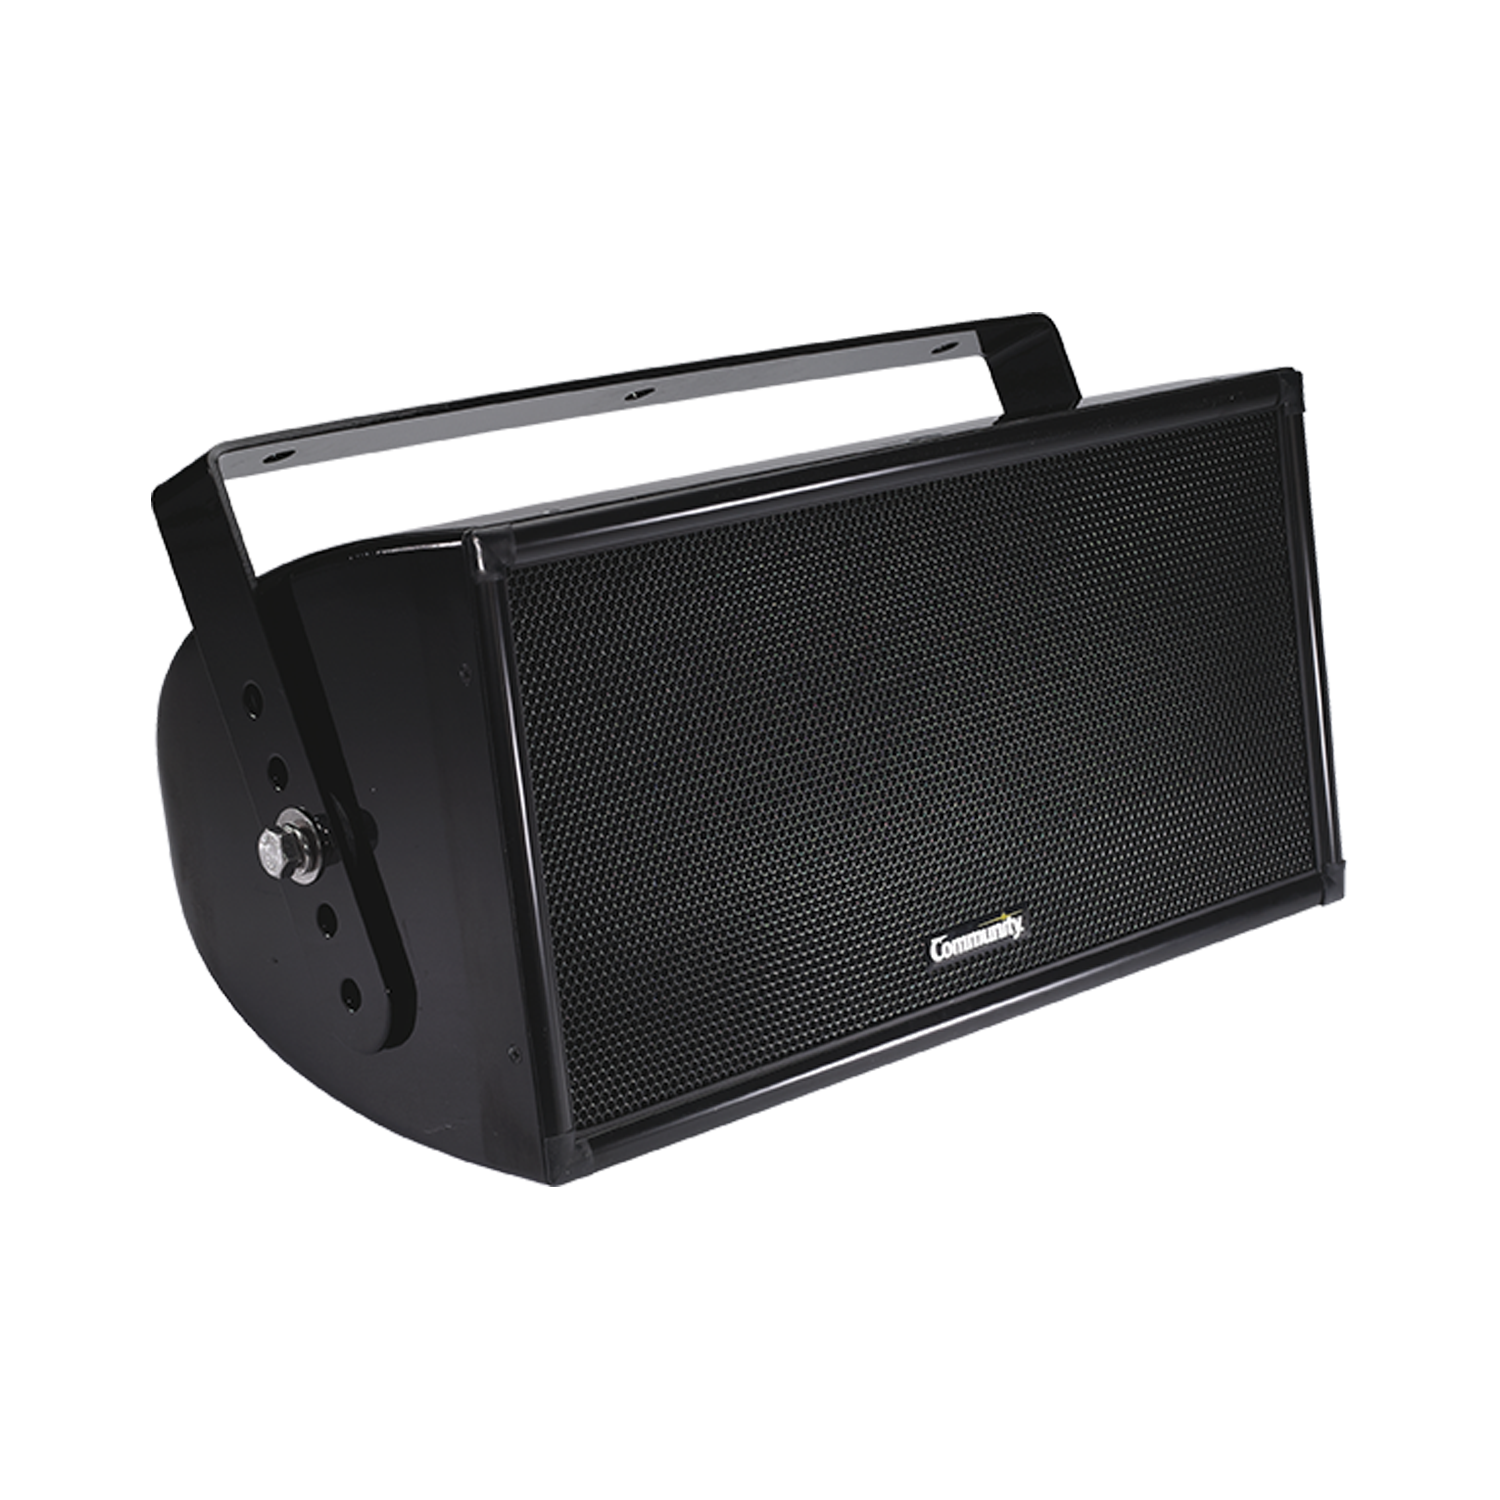 W2-2W8 Compact Premium Music Solutions Dual 8-inch Compact Premium Performance Two-Way